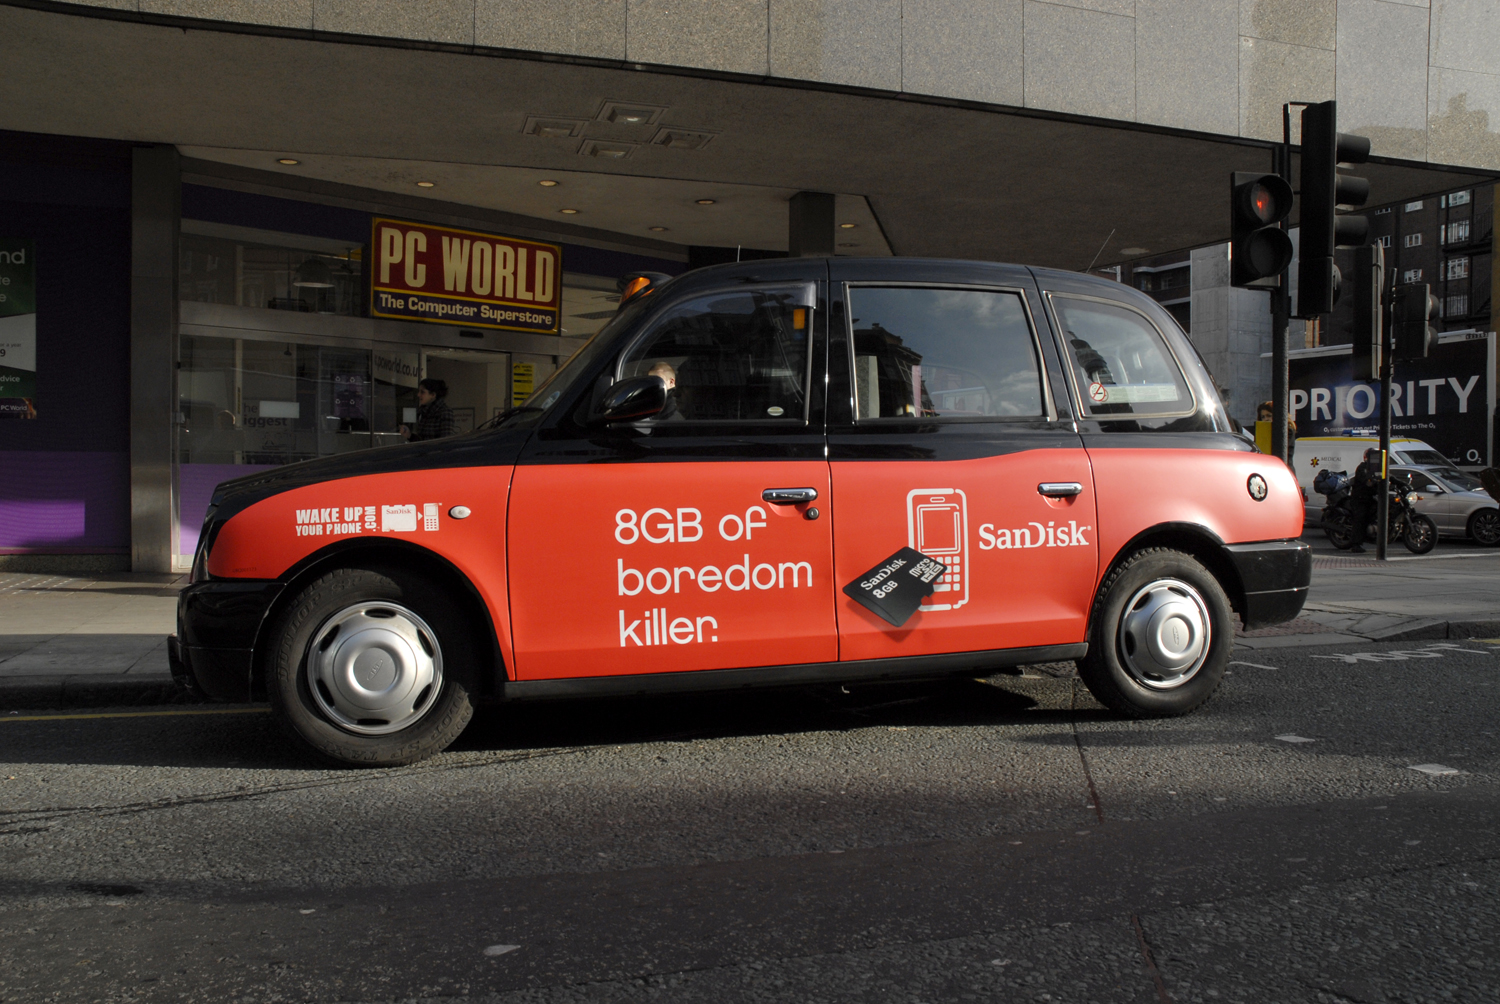 2008 Ubiquitous taxi advertising campaign for Sandisk - 8mg of boredom killer